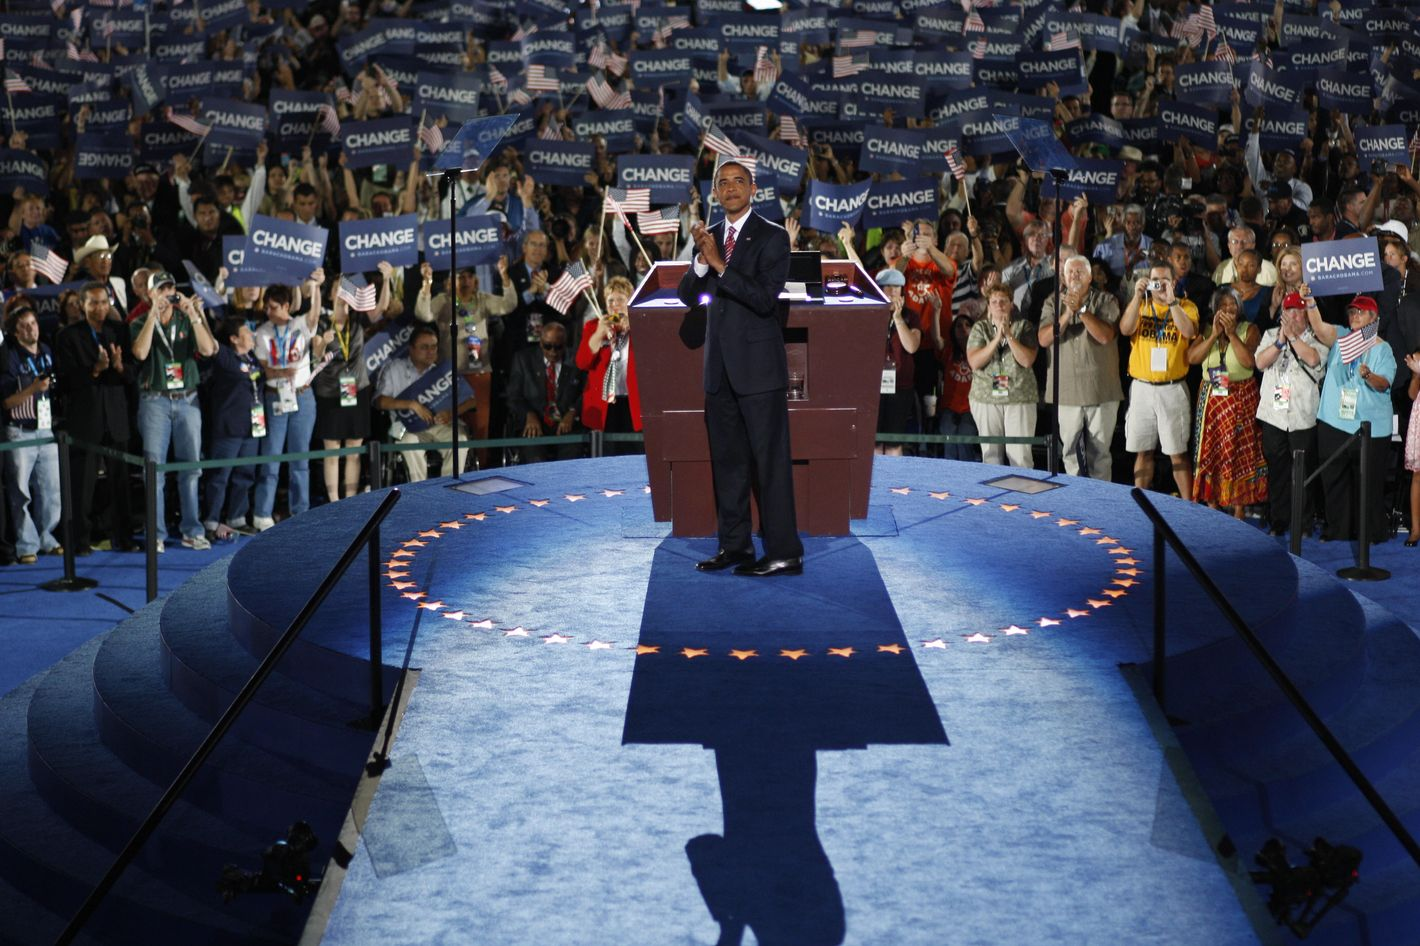 """Democratic presidential nominee Barack Obama greets delegates prior to accepting the Democratic presidential nomination at Invesco Field at Mile High during the 2008 Democratic National Convention (DNC) August 28, 2008 in Denver, Colorado. Obama's acceptance speech coincides today with the 45th anniversary of Rev. Martin Luther King Jr. delivery of the """"I Have a Dream"""" speech. Sen. Obama is now the first African-American to be officially nominated as a candidate for U.S. president by a major party."""